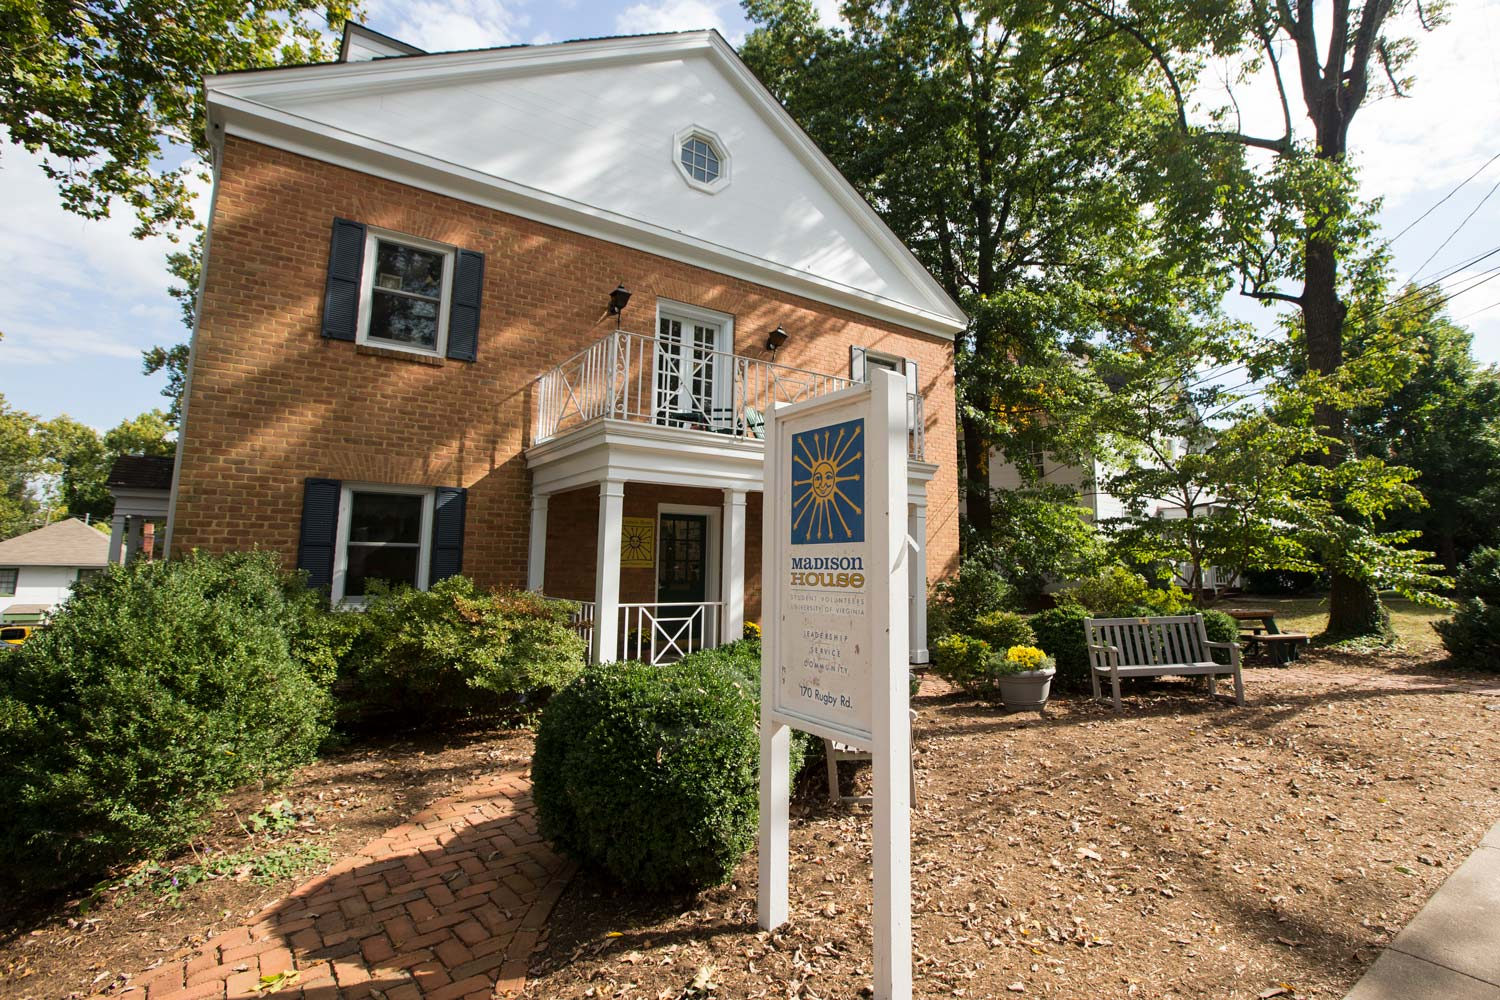 About half of all undergraduates will spend at least a year involved with Madison House, the student volunteer center at UVA.